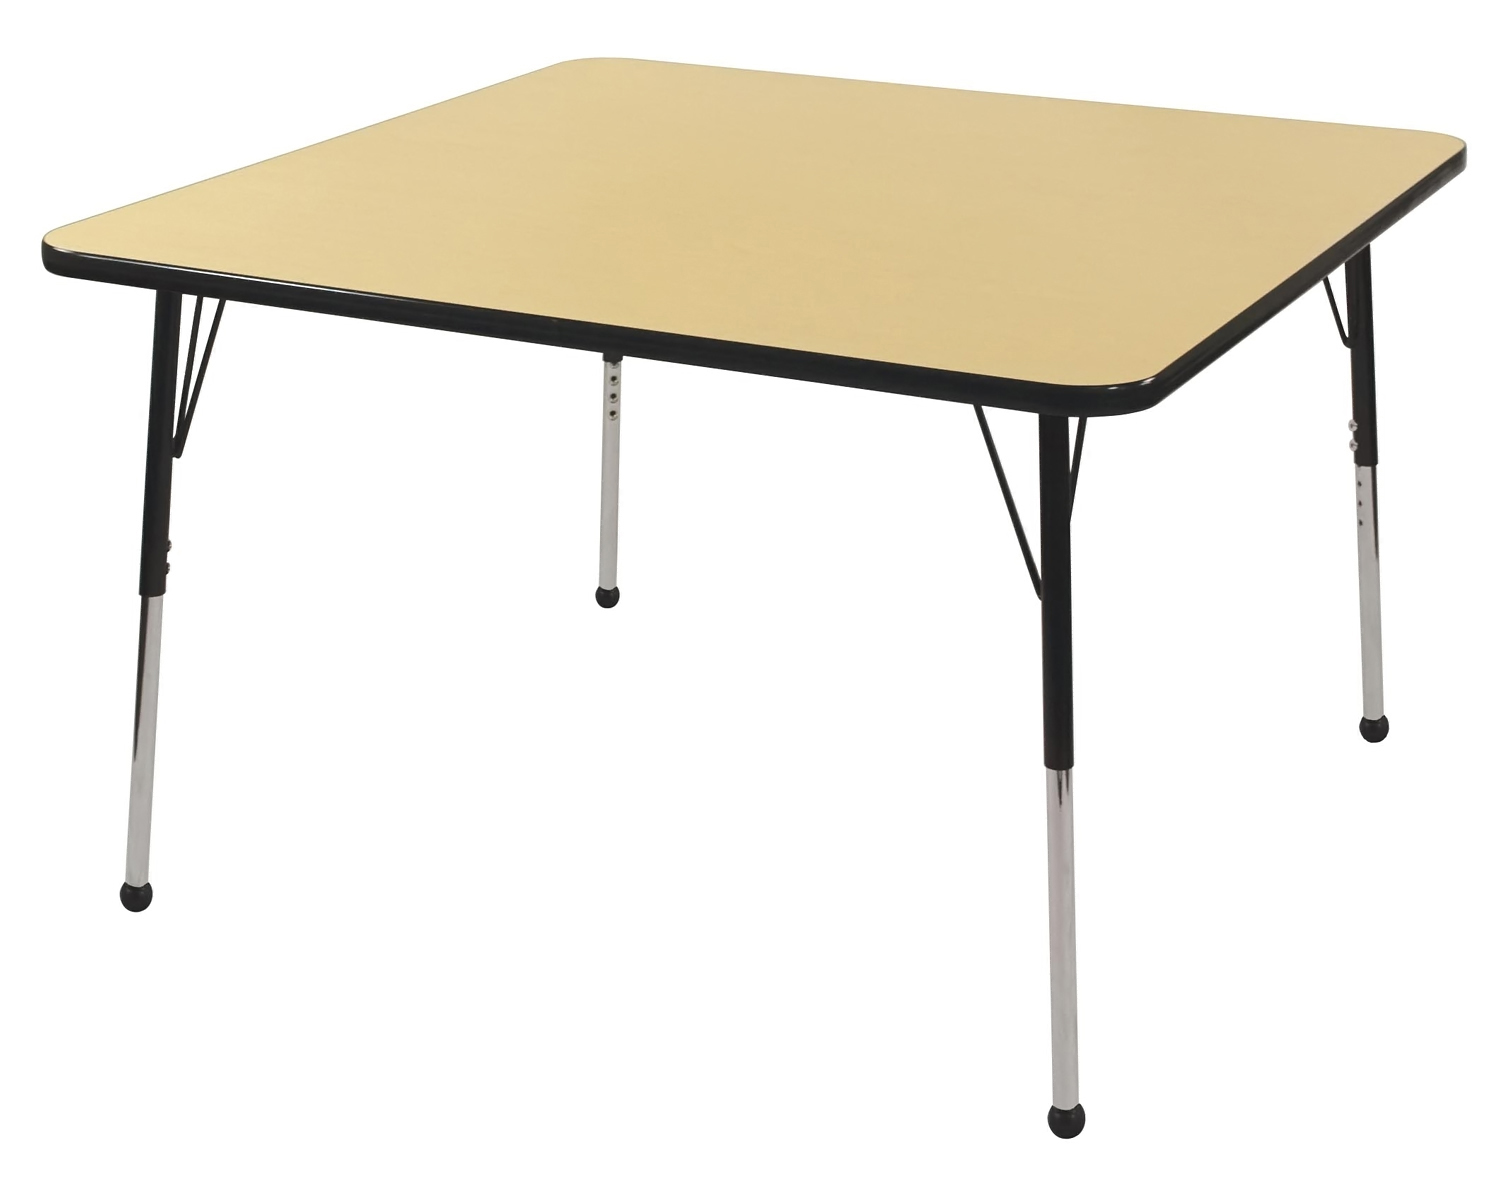 Kids Adjustable Square Classroom Preschool 30 Activity Table Maple